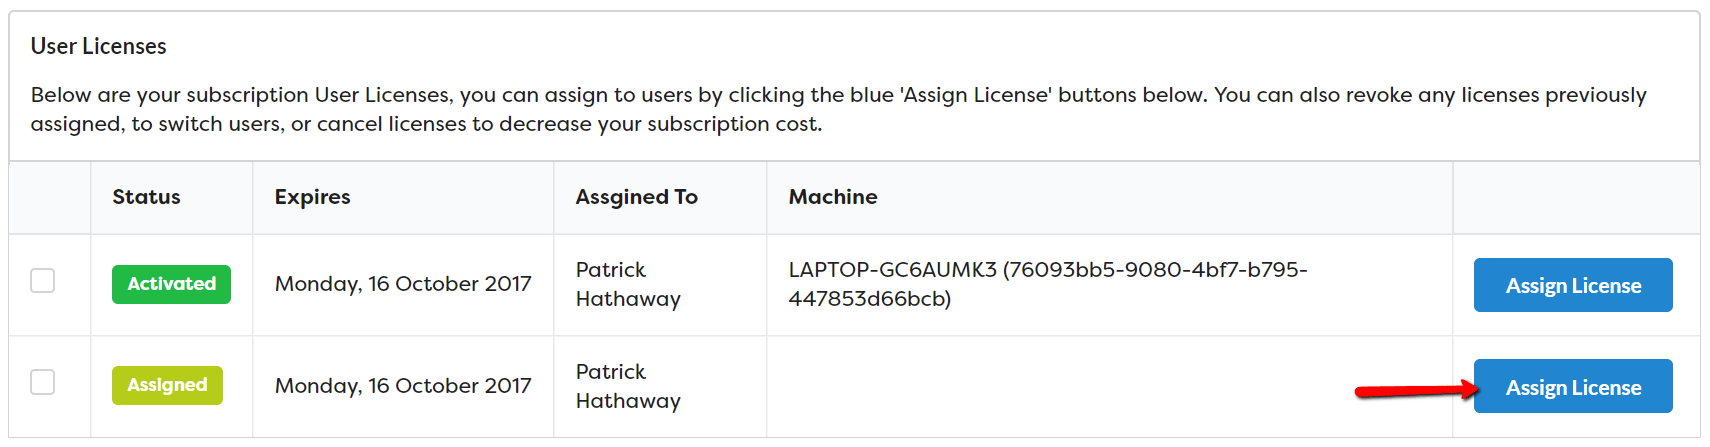 Assign Free Licenses